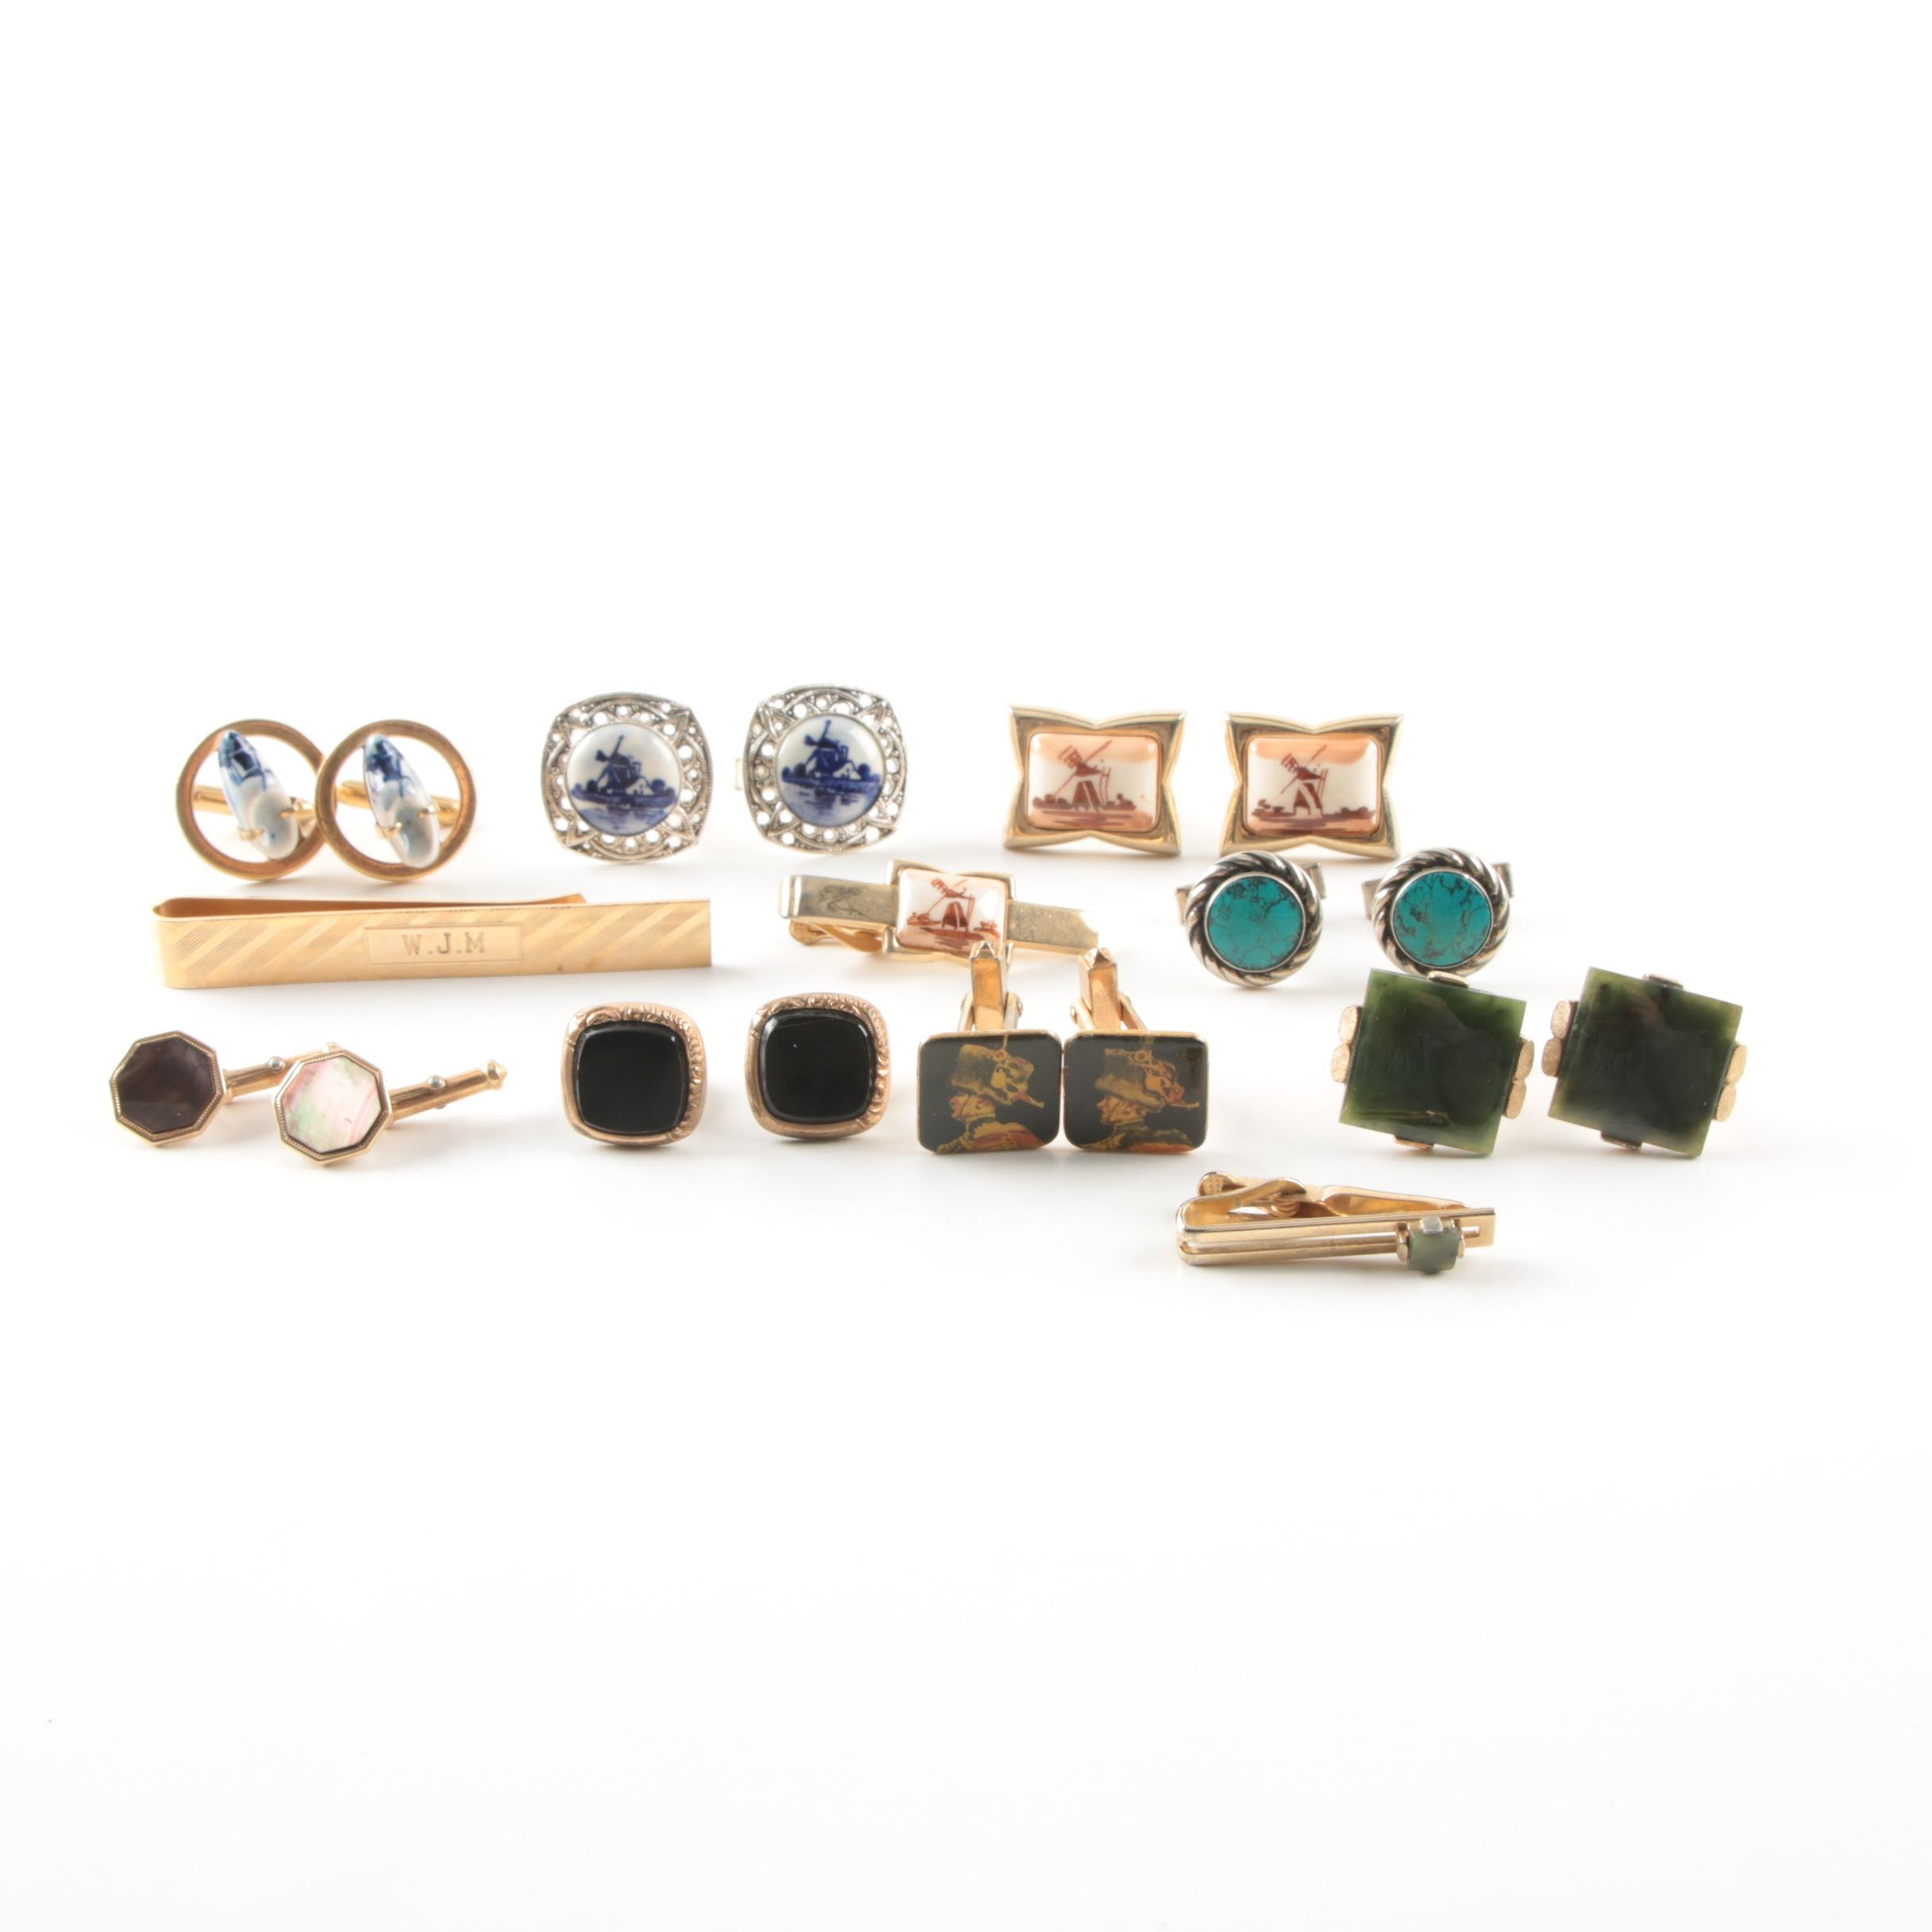 Silver and Gold Tone Nephrite, Onyx and Mother of Pearl Cufflinks and Tie Bars